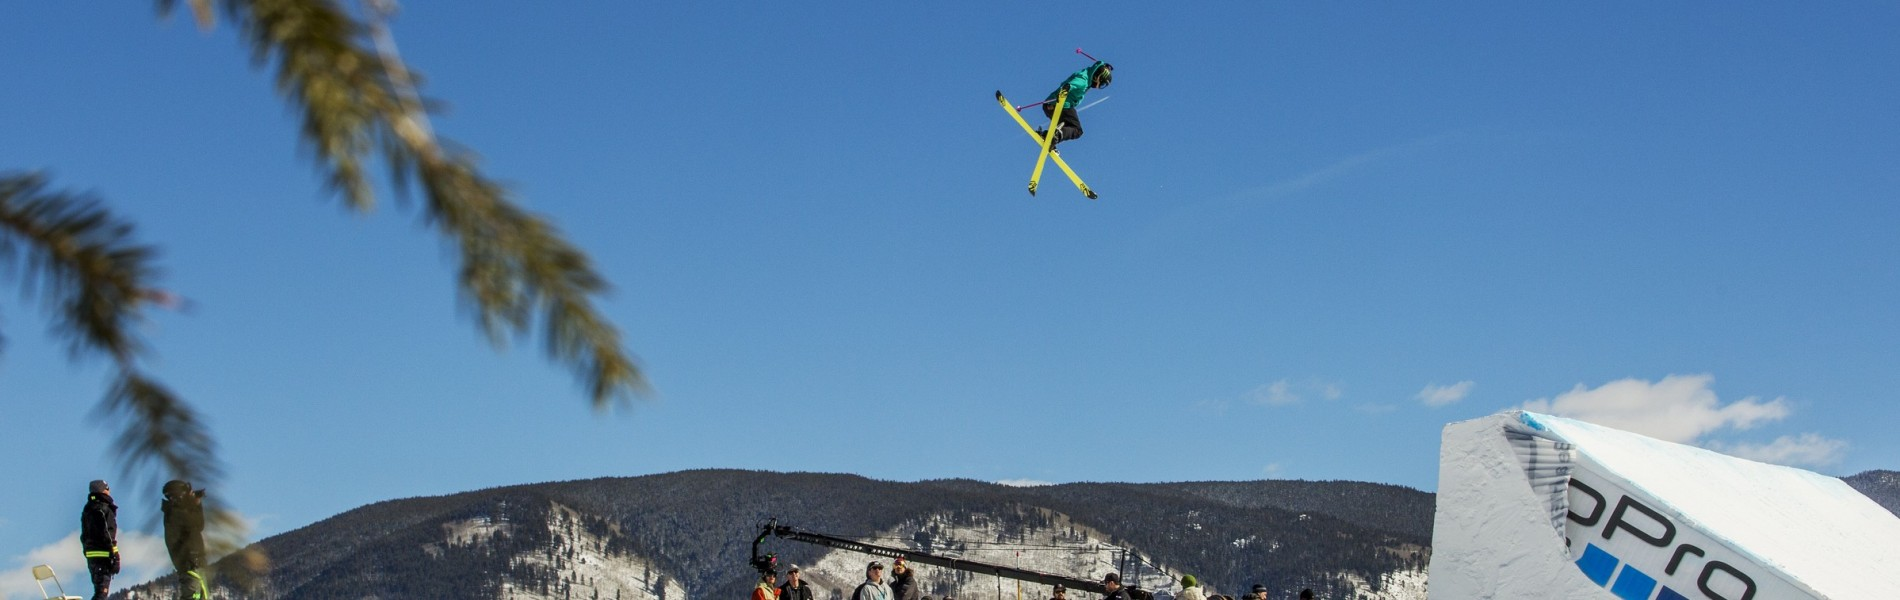 Maggie Voisin competes in the 2016 Winter X Games.